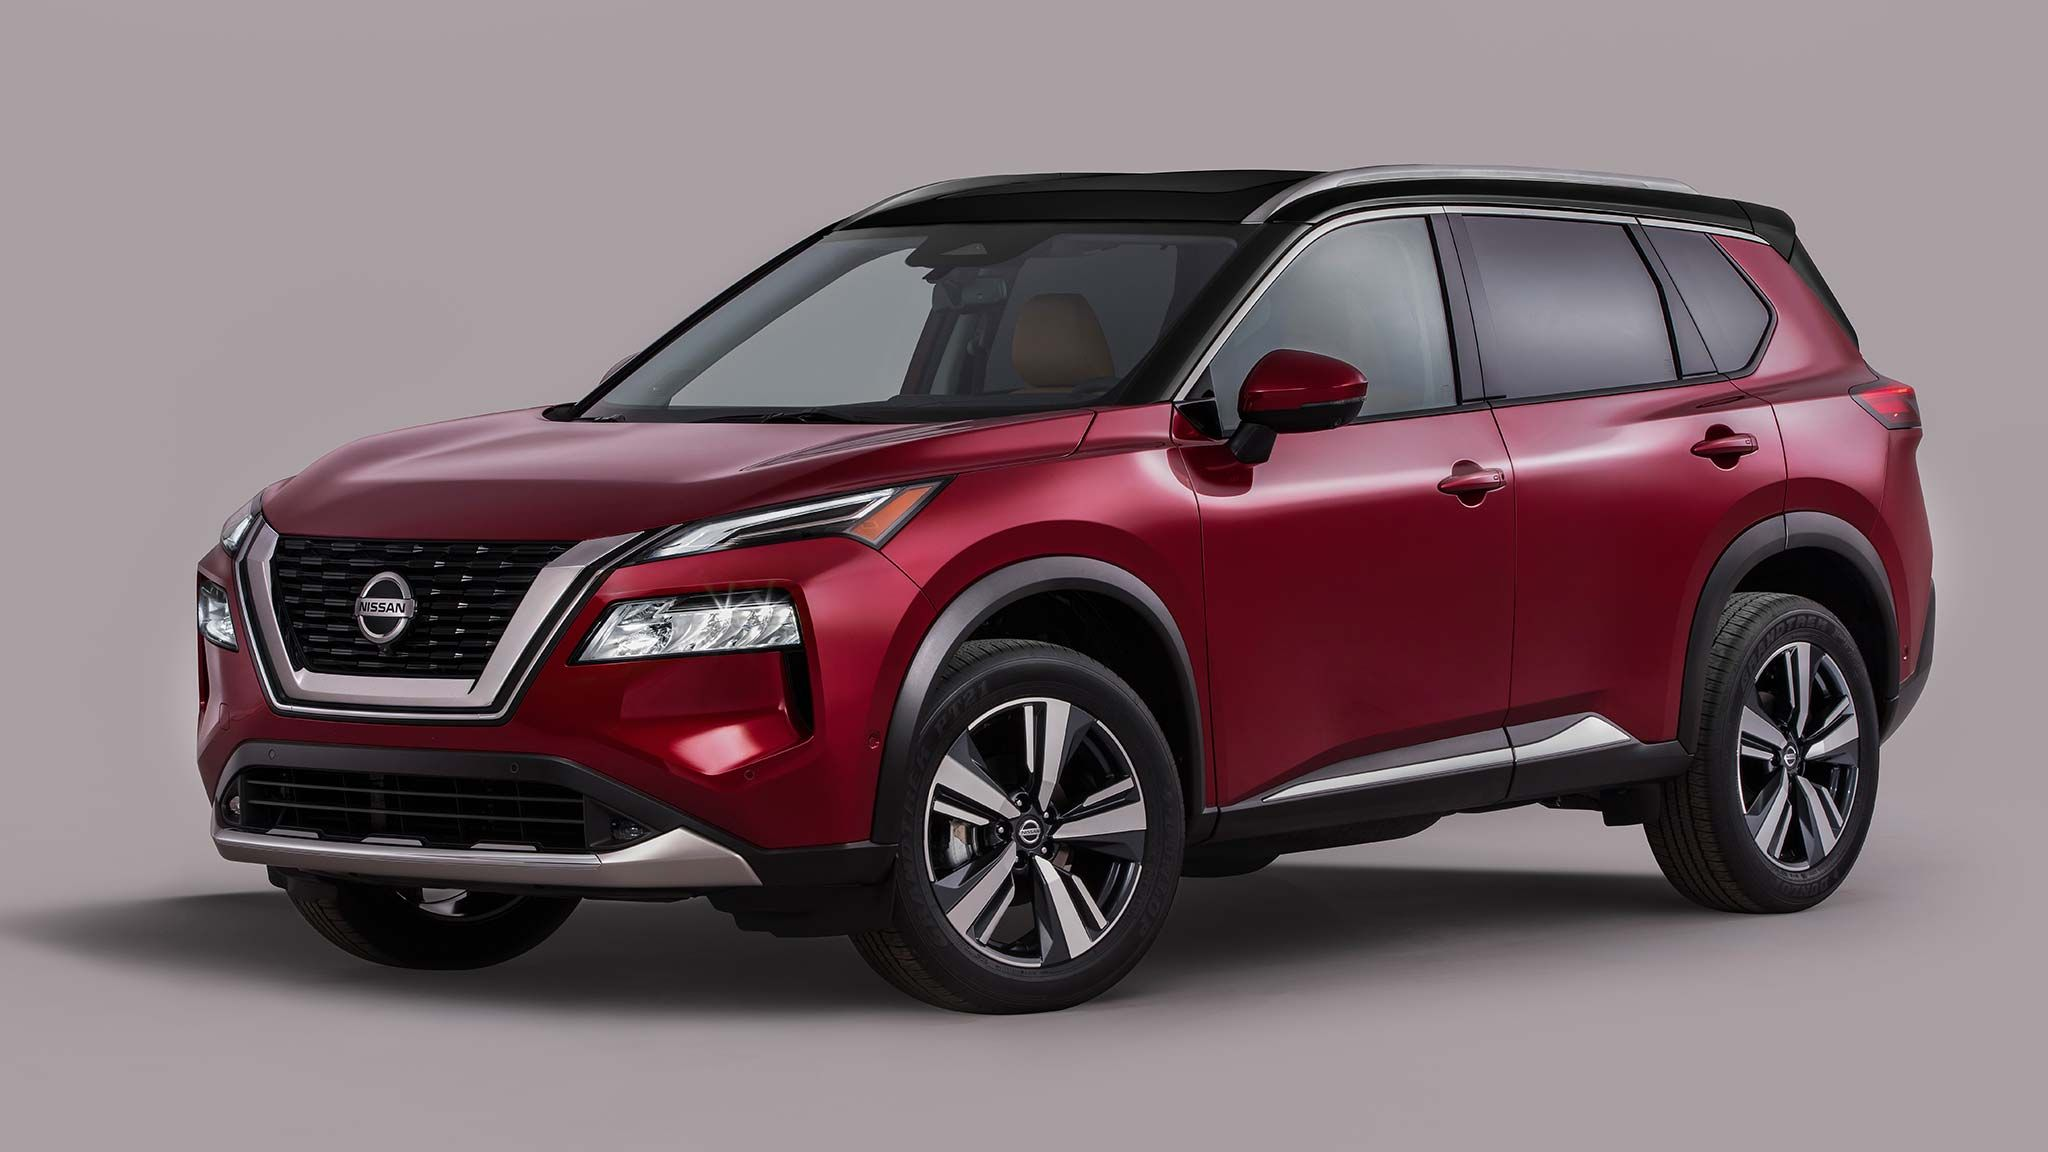 2020 Nissan Rogue Preview Availability And Technology Nissan Rogue Nissan Rogues